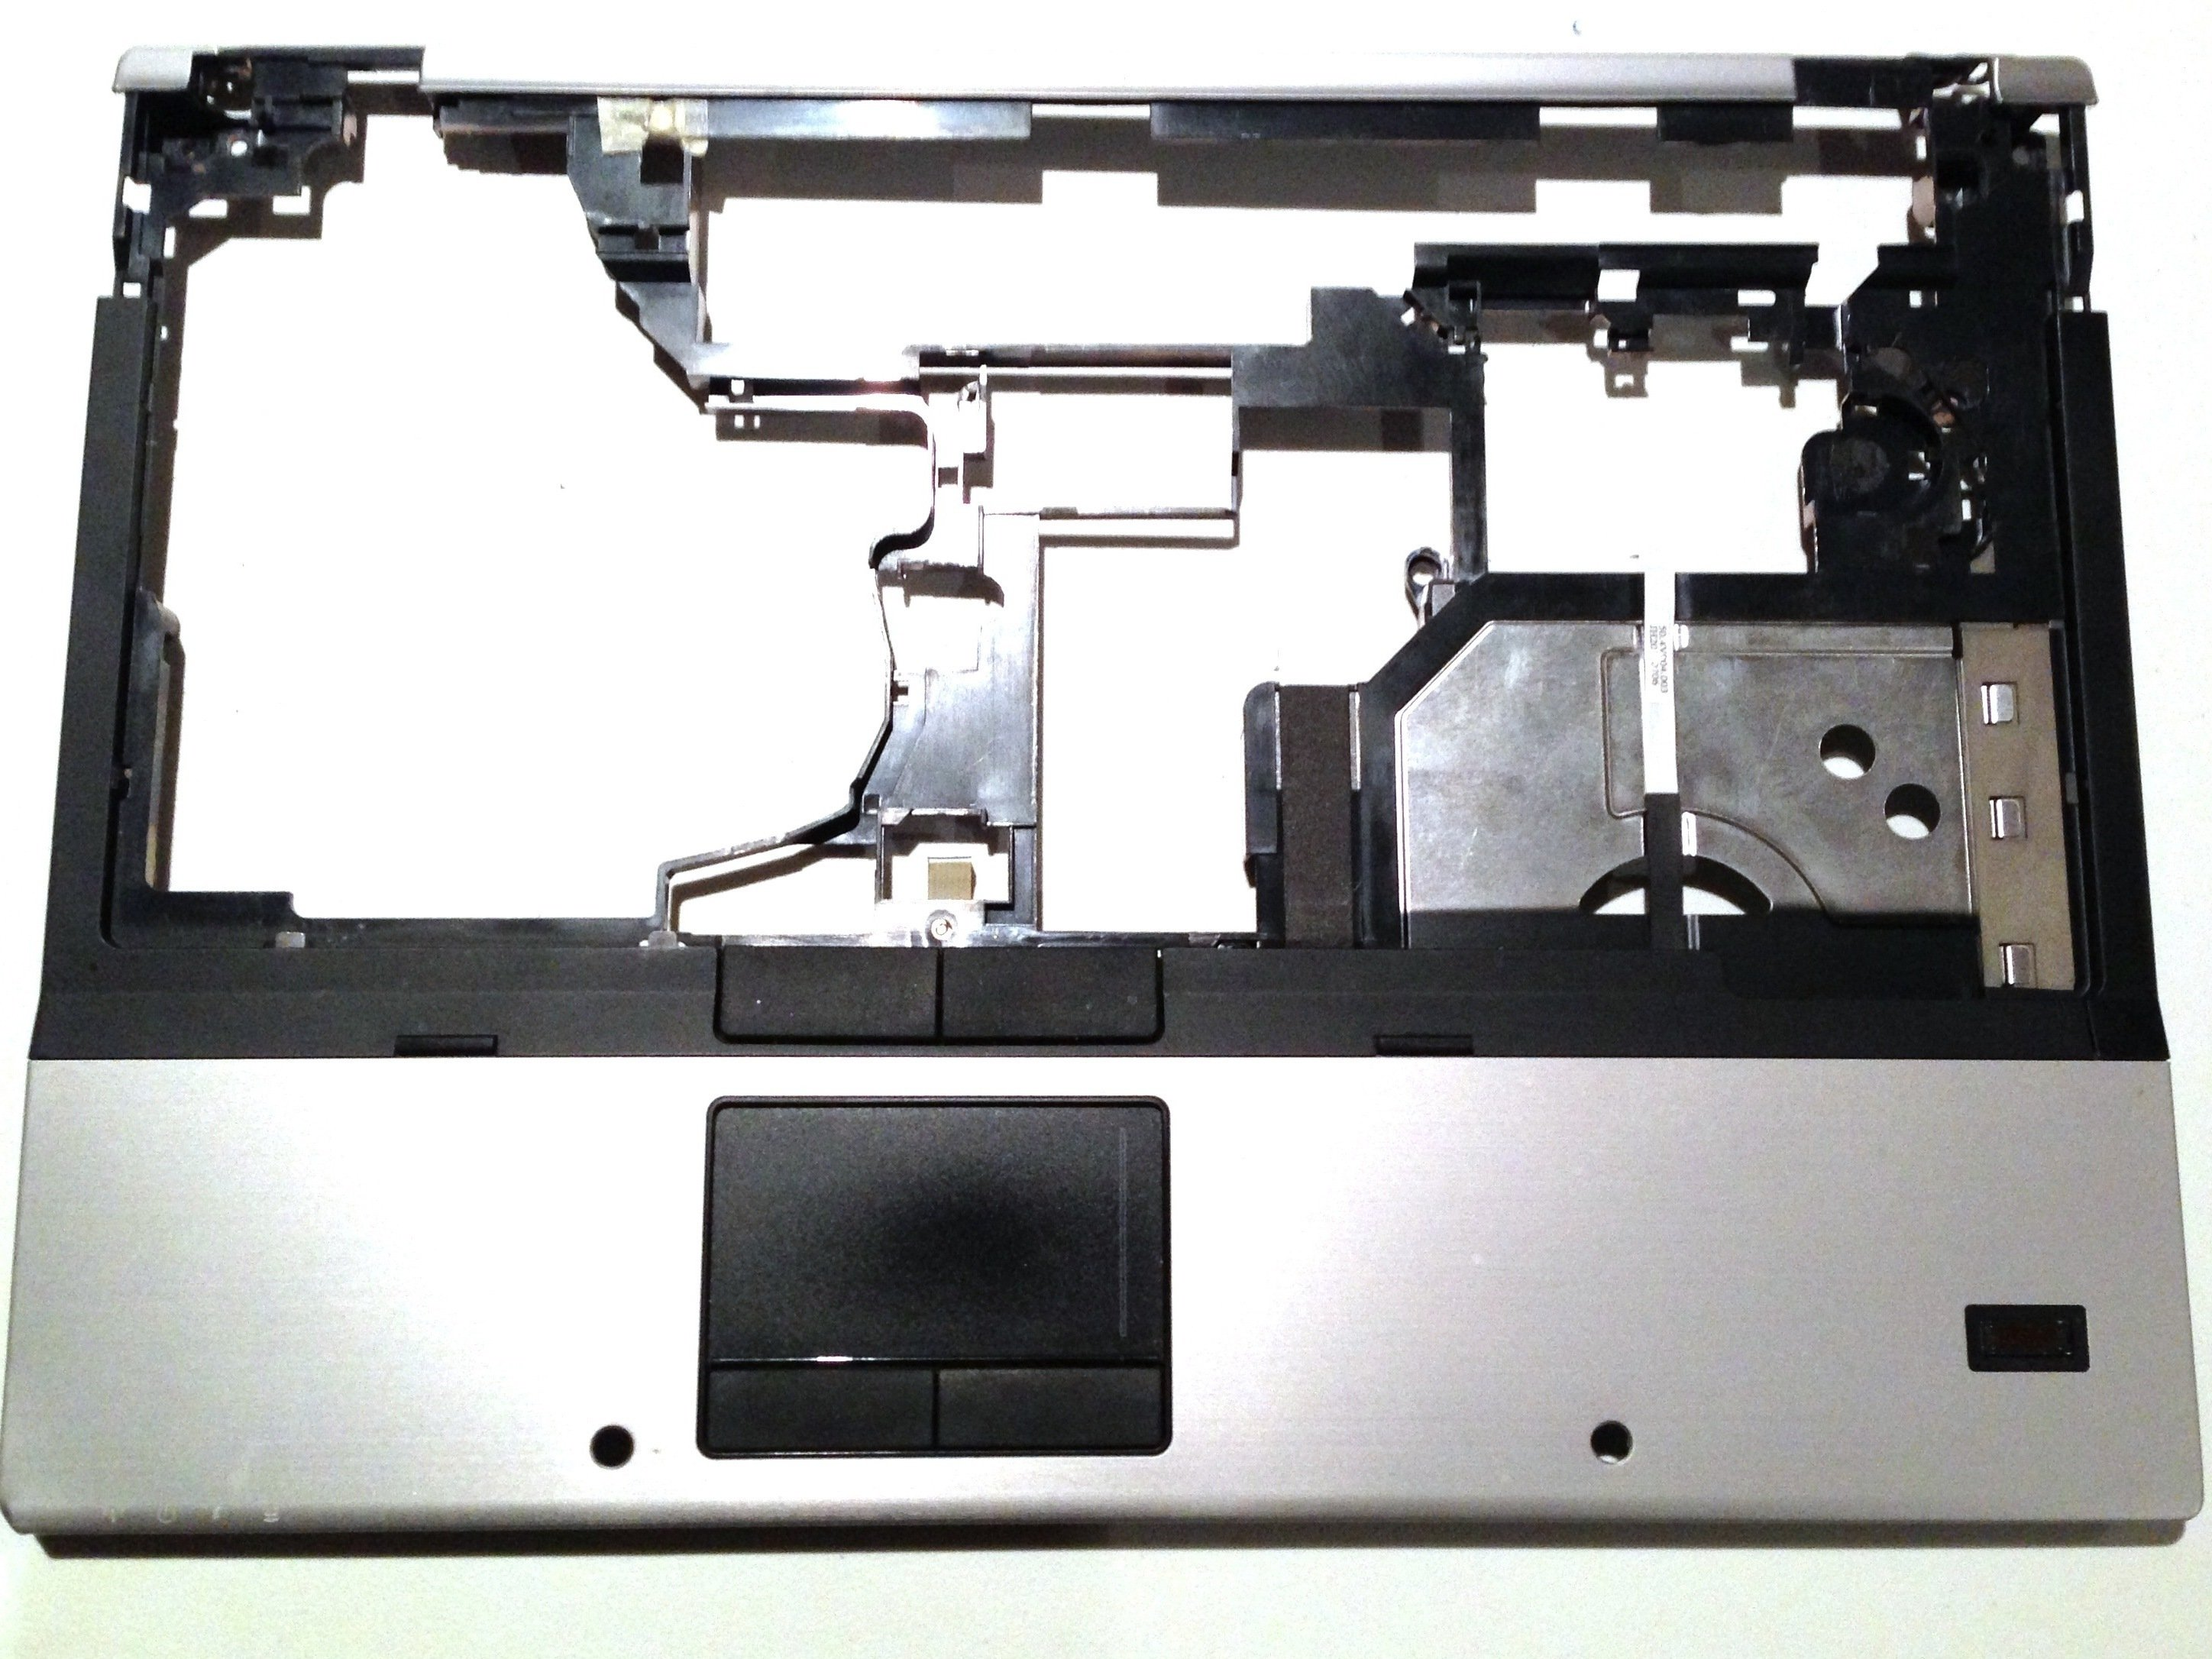 Removing the HP Elitebook 6930p Top Cover - iFixit Repair Guide